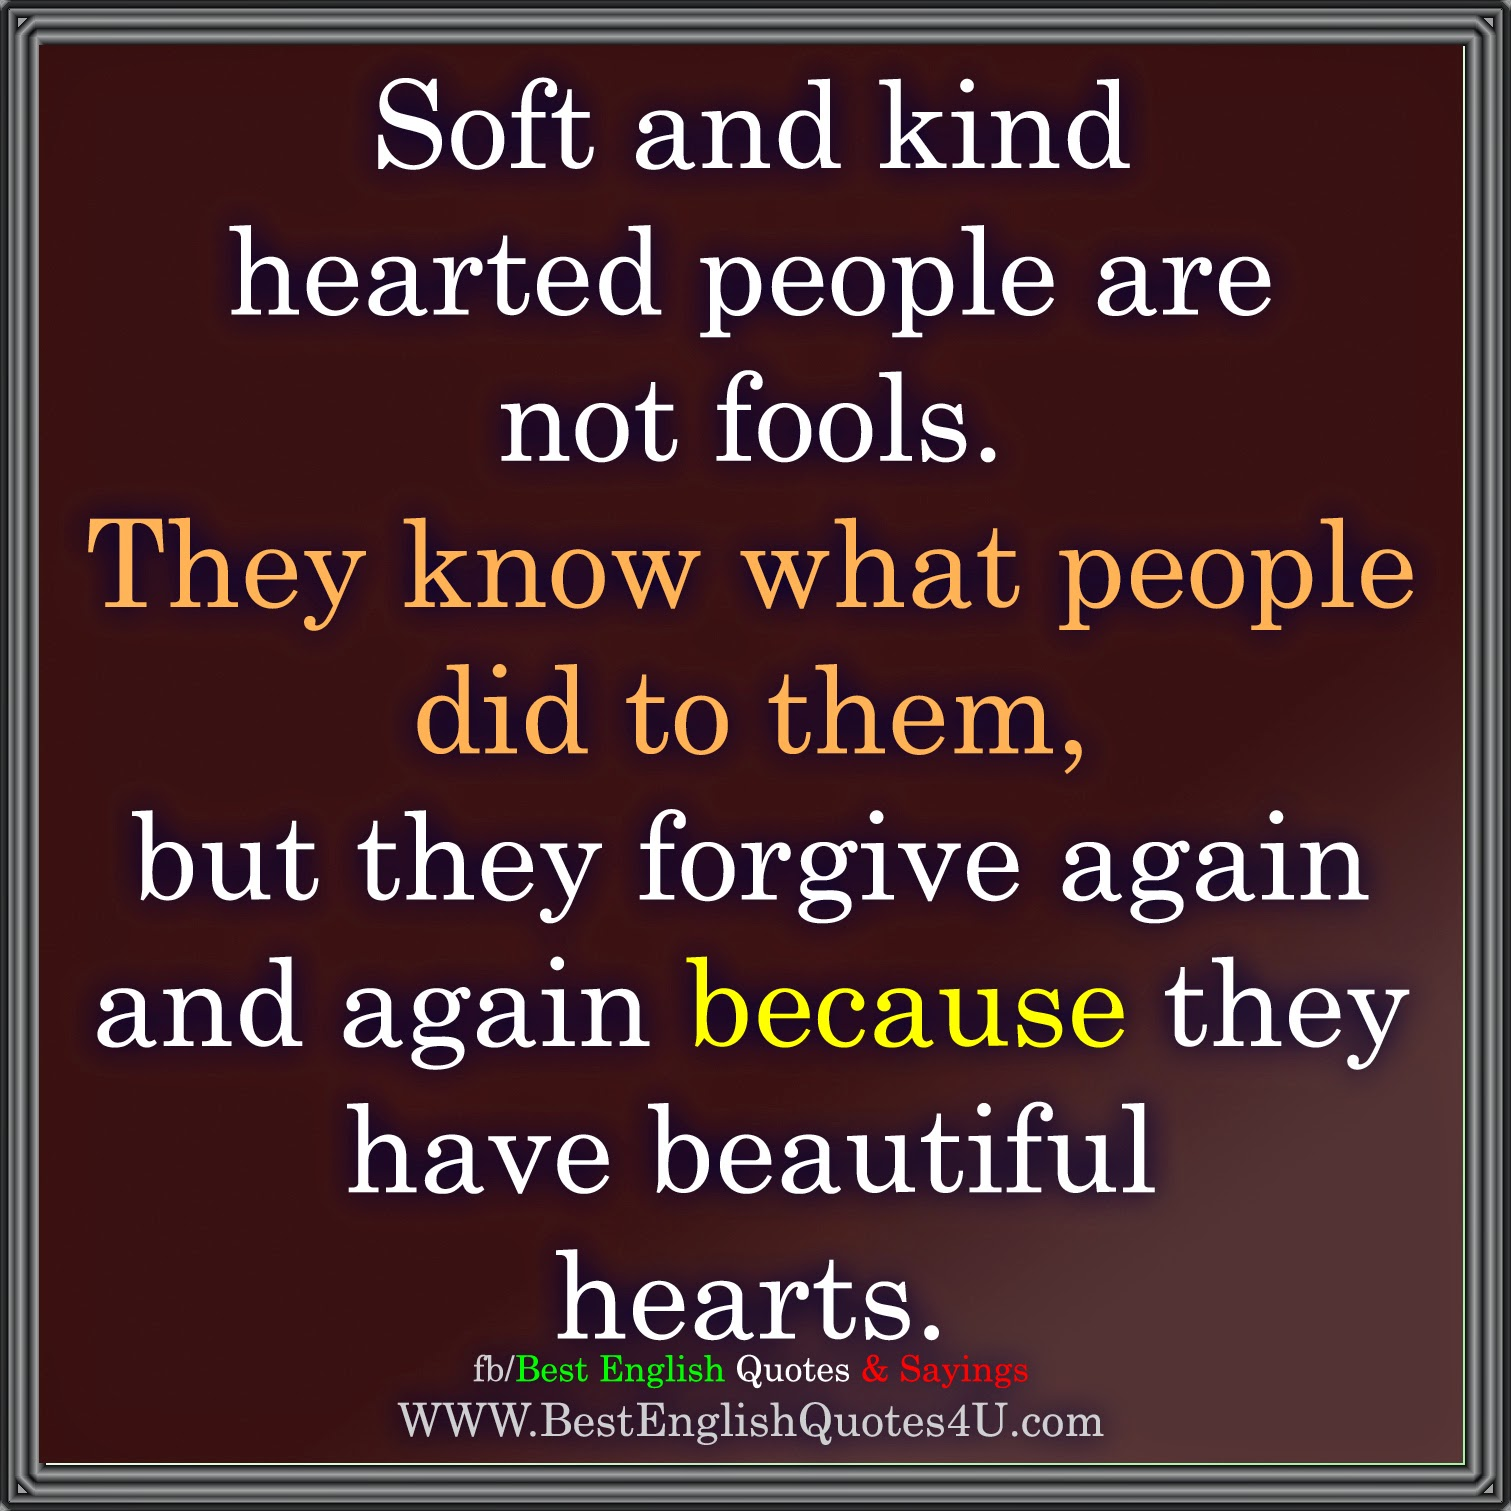 Soft Quotes Soft And Kind Hearted People Are Not Fools Best'english'quotes